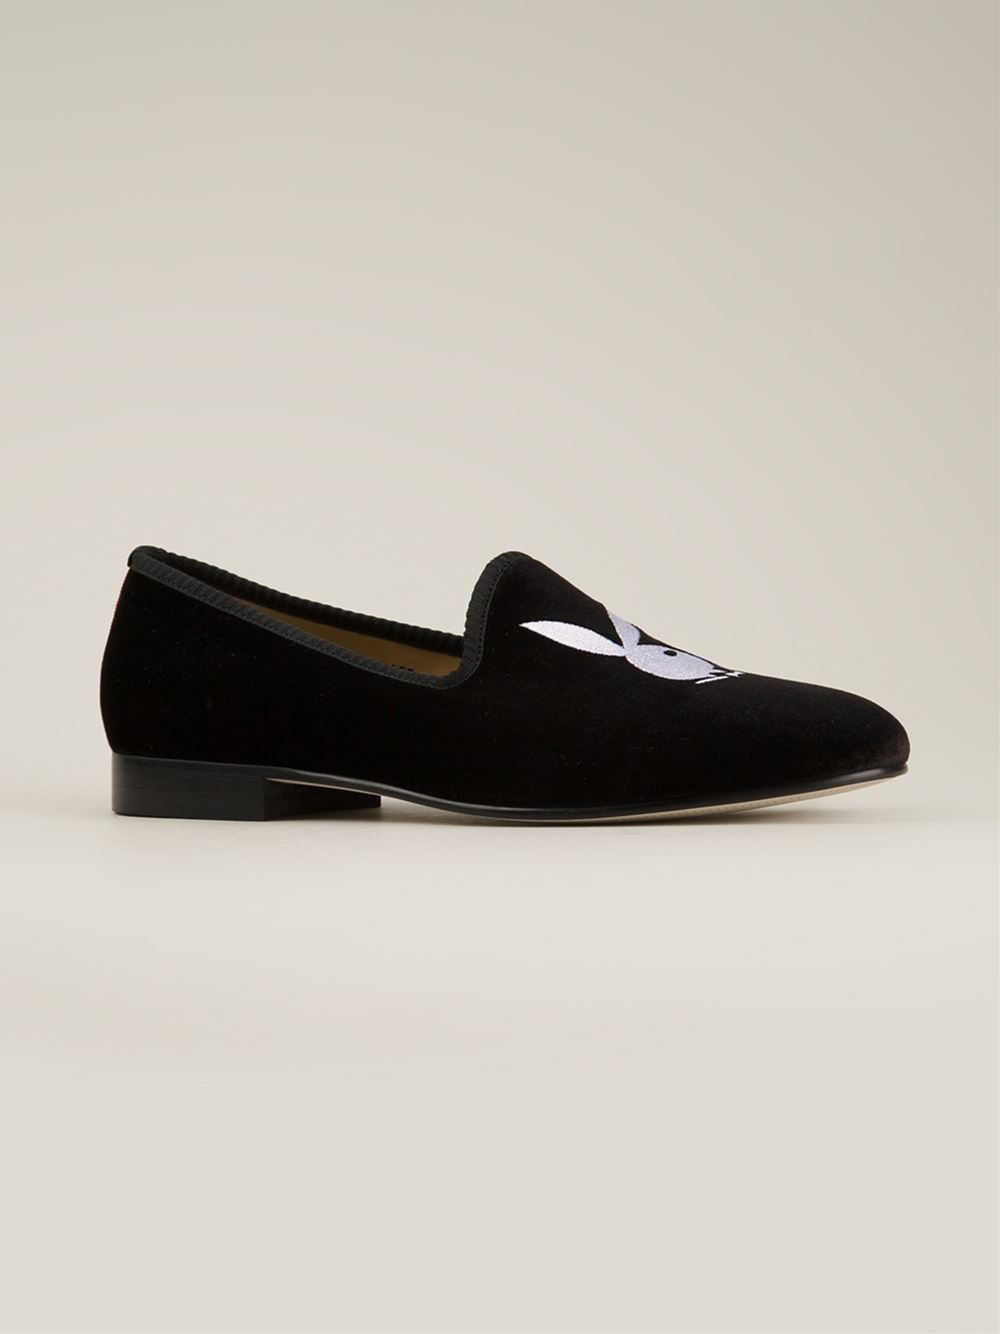 4e3b9ab2b30 Lyst - Del Toro Silk and Leather Slippers in Black for Men